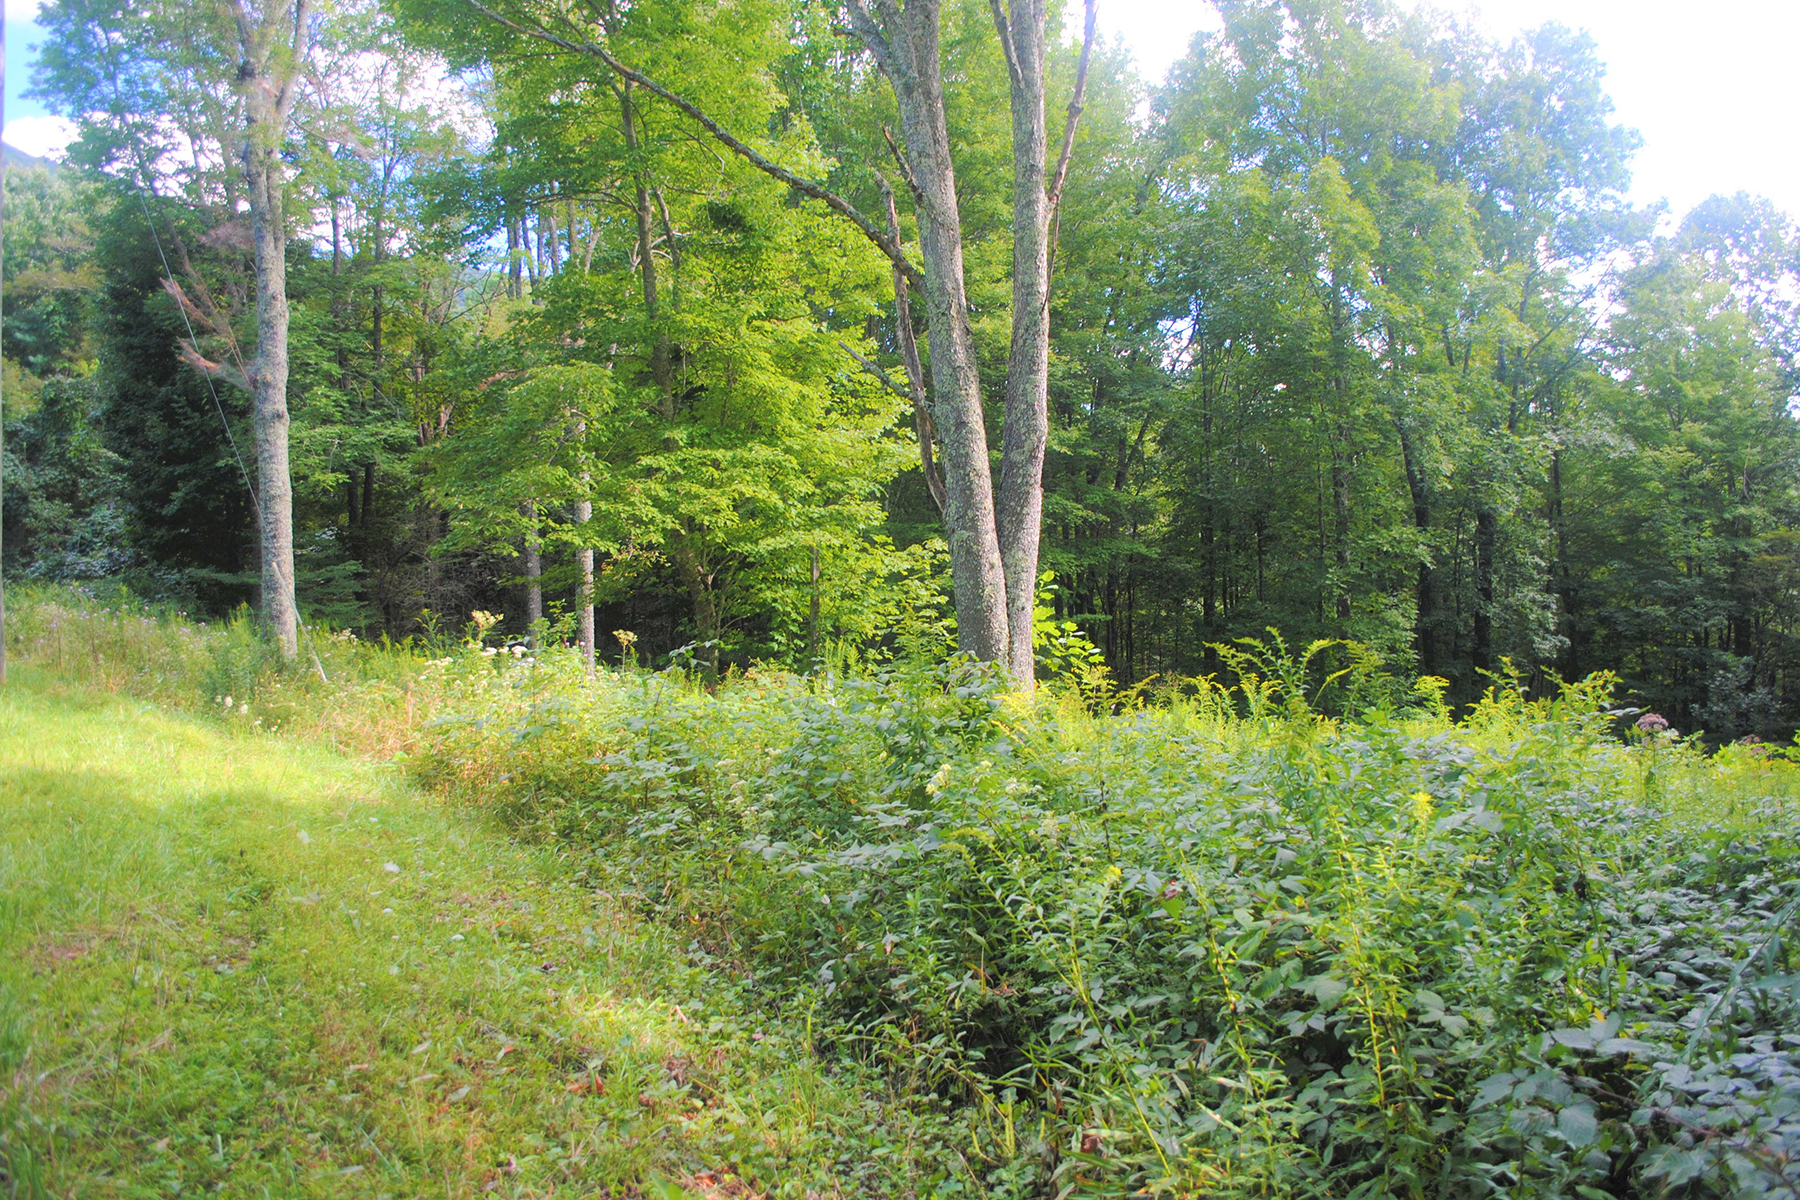 Land for Sale at RIVER BREEZE ESTATES - CRESTON Lot 7 River Breeze Dr Creston, North Carolina 28615 United States